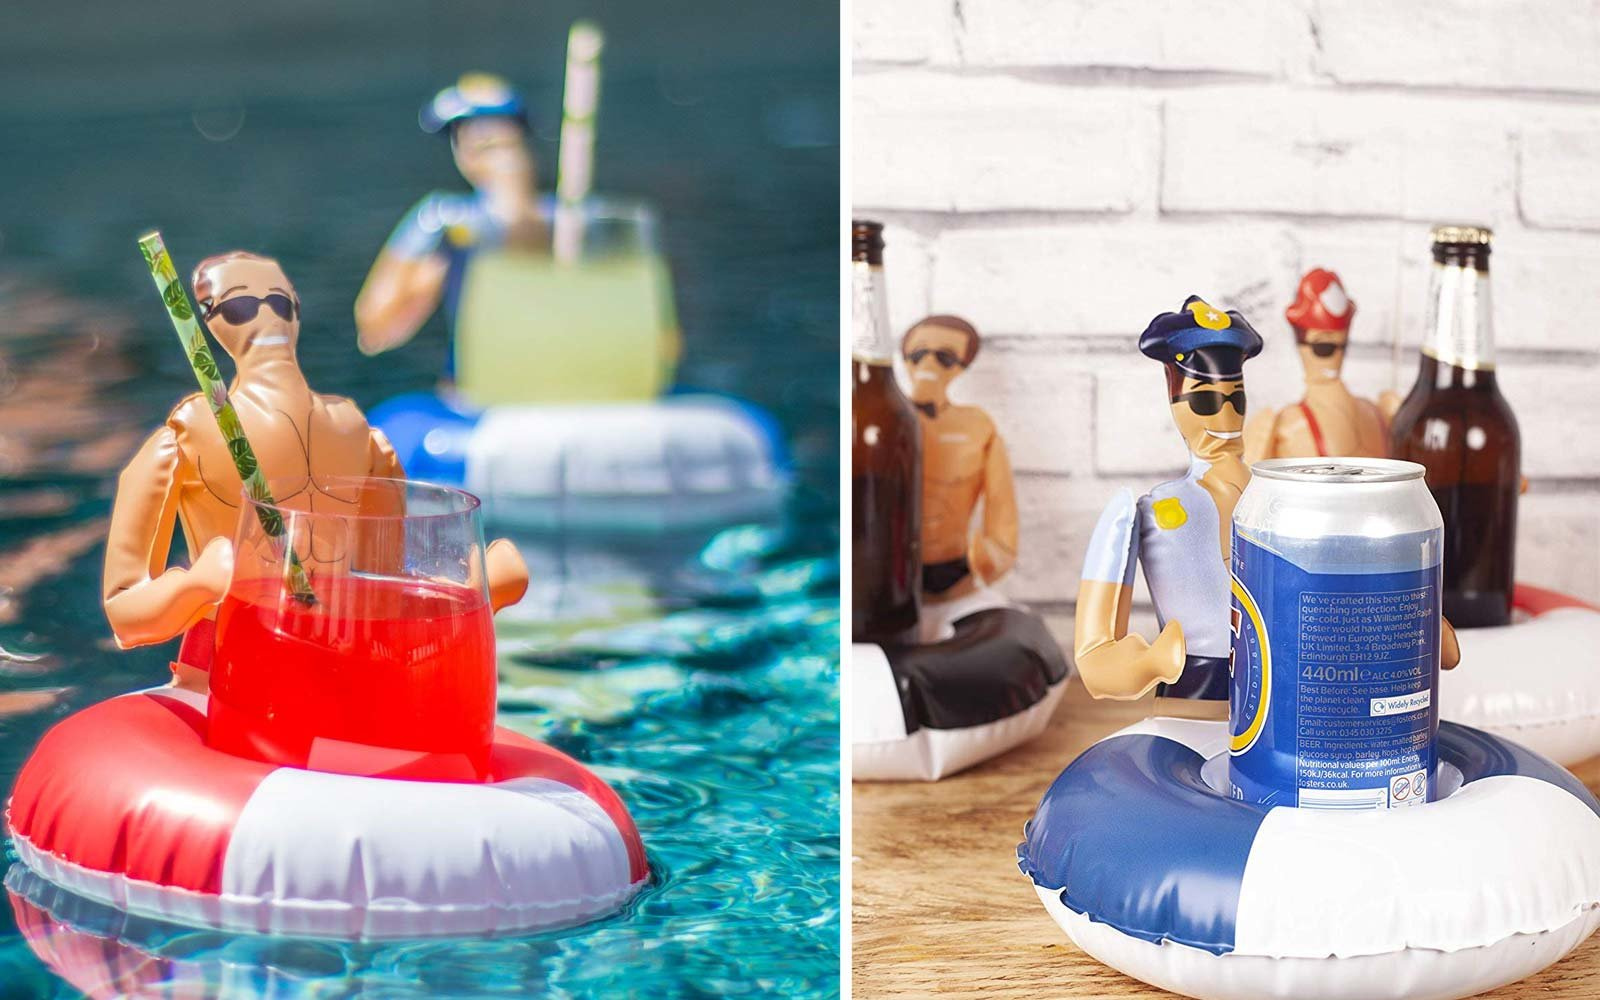 Chad the Hunky 'Boyfriend' Now Comes As an Inflatable Cup Holder so You Never Have to Drink Alone